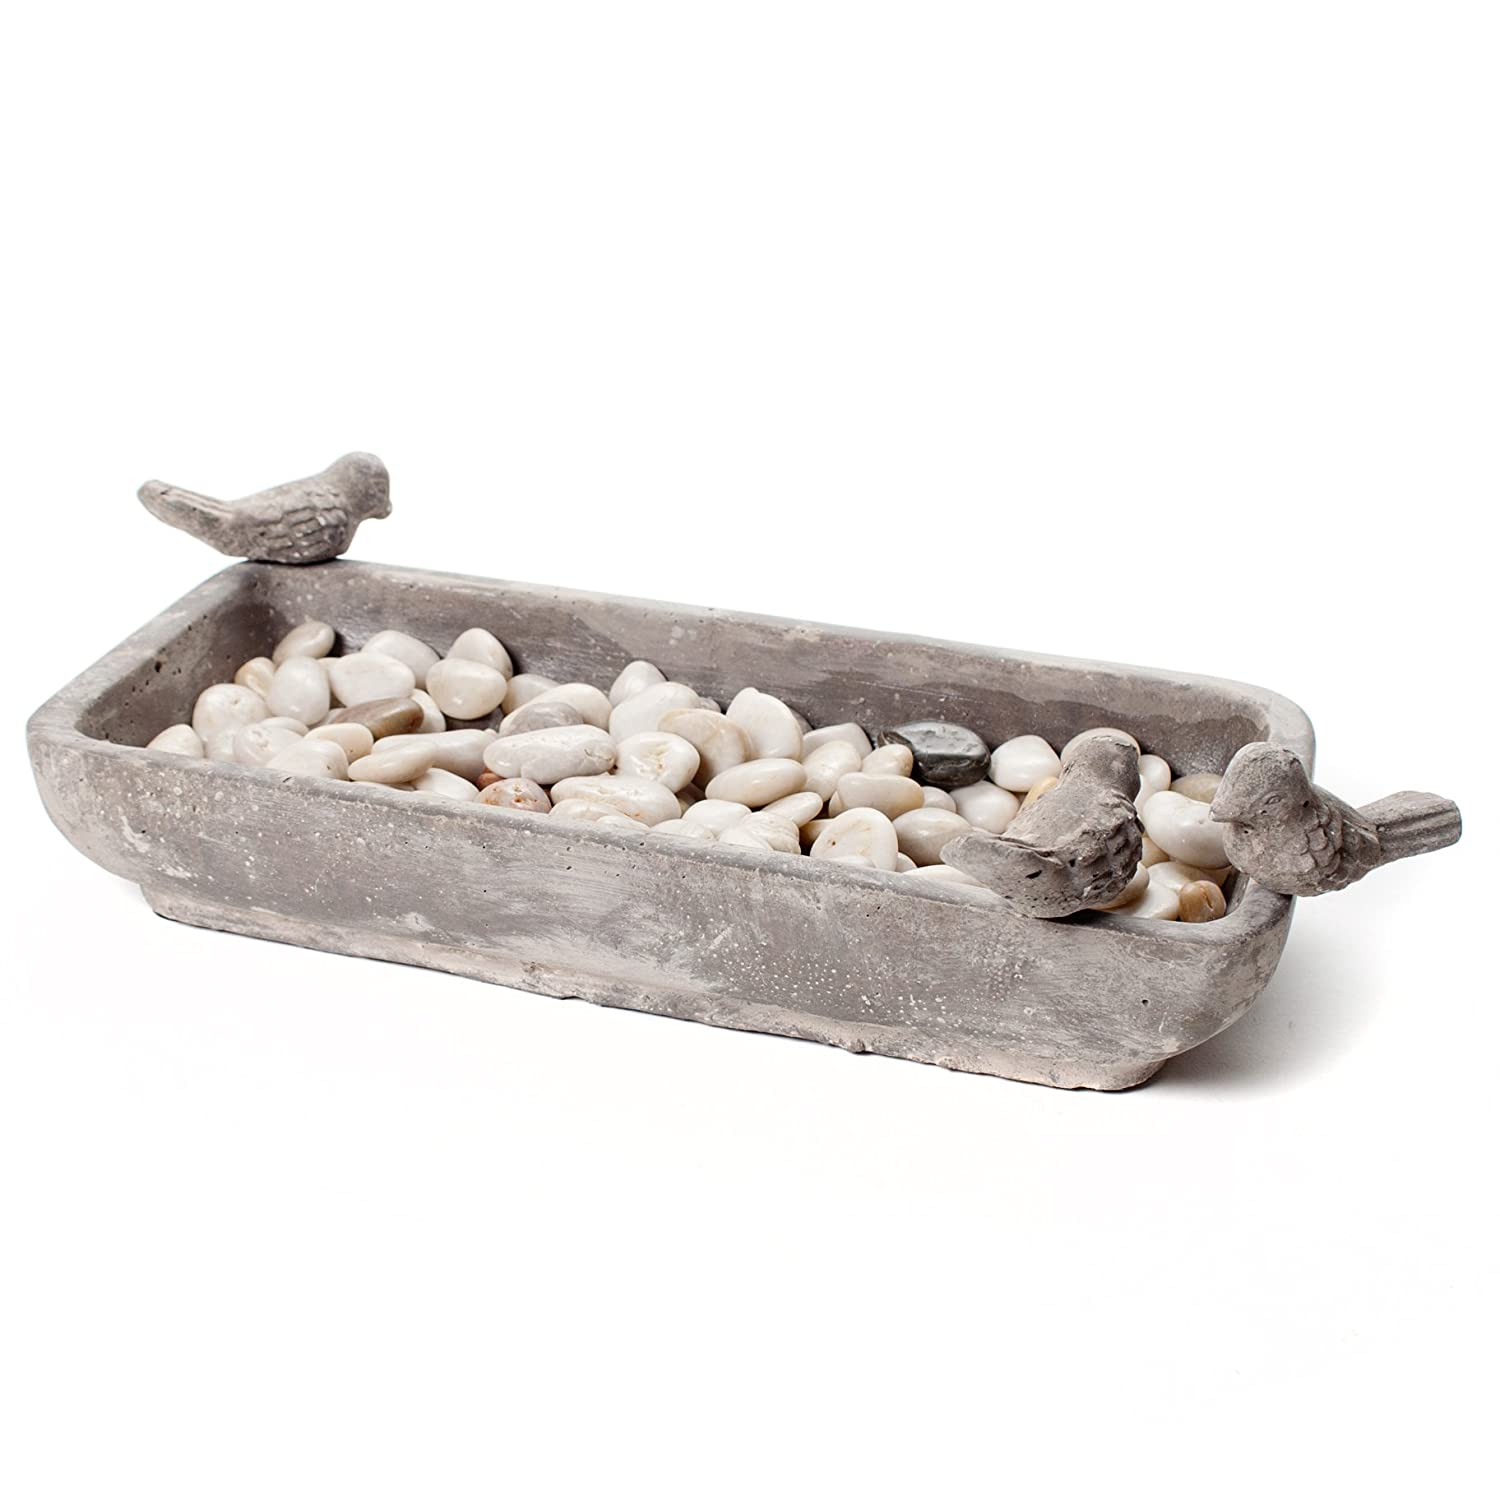 Abbott Collection 27-RELIC/682 LG Ceramic Rectangular Bird Bath, Grey